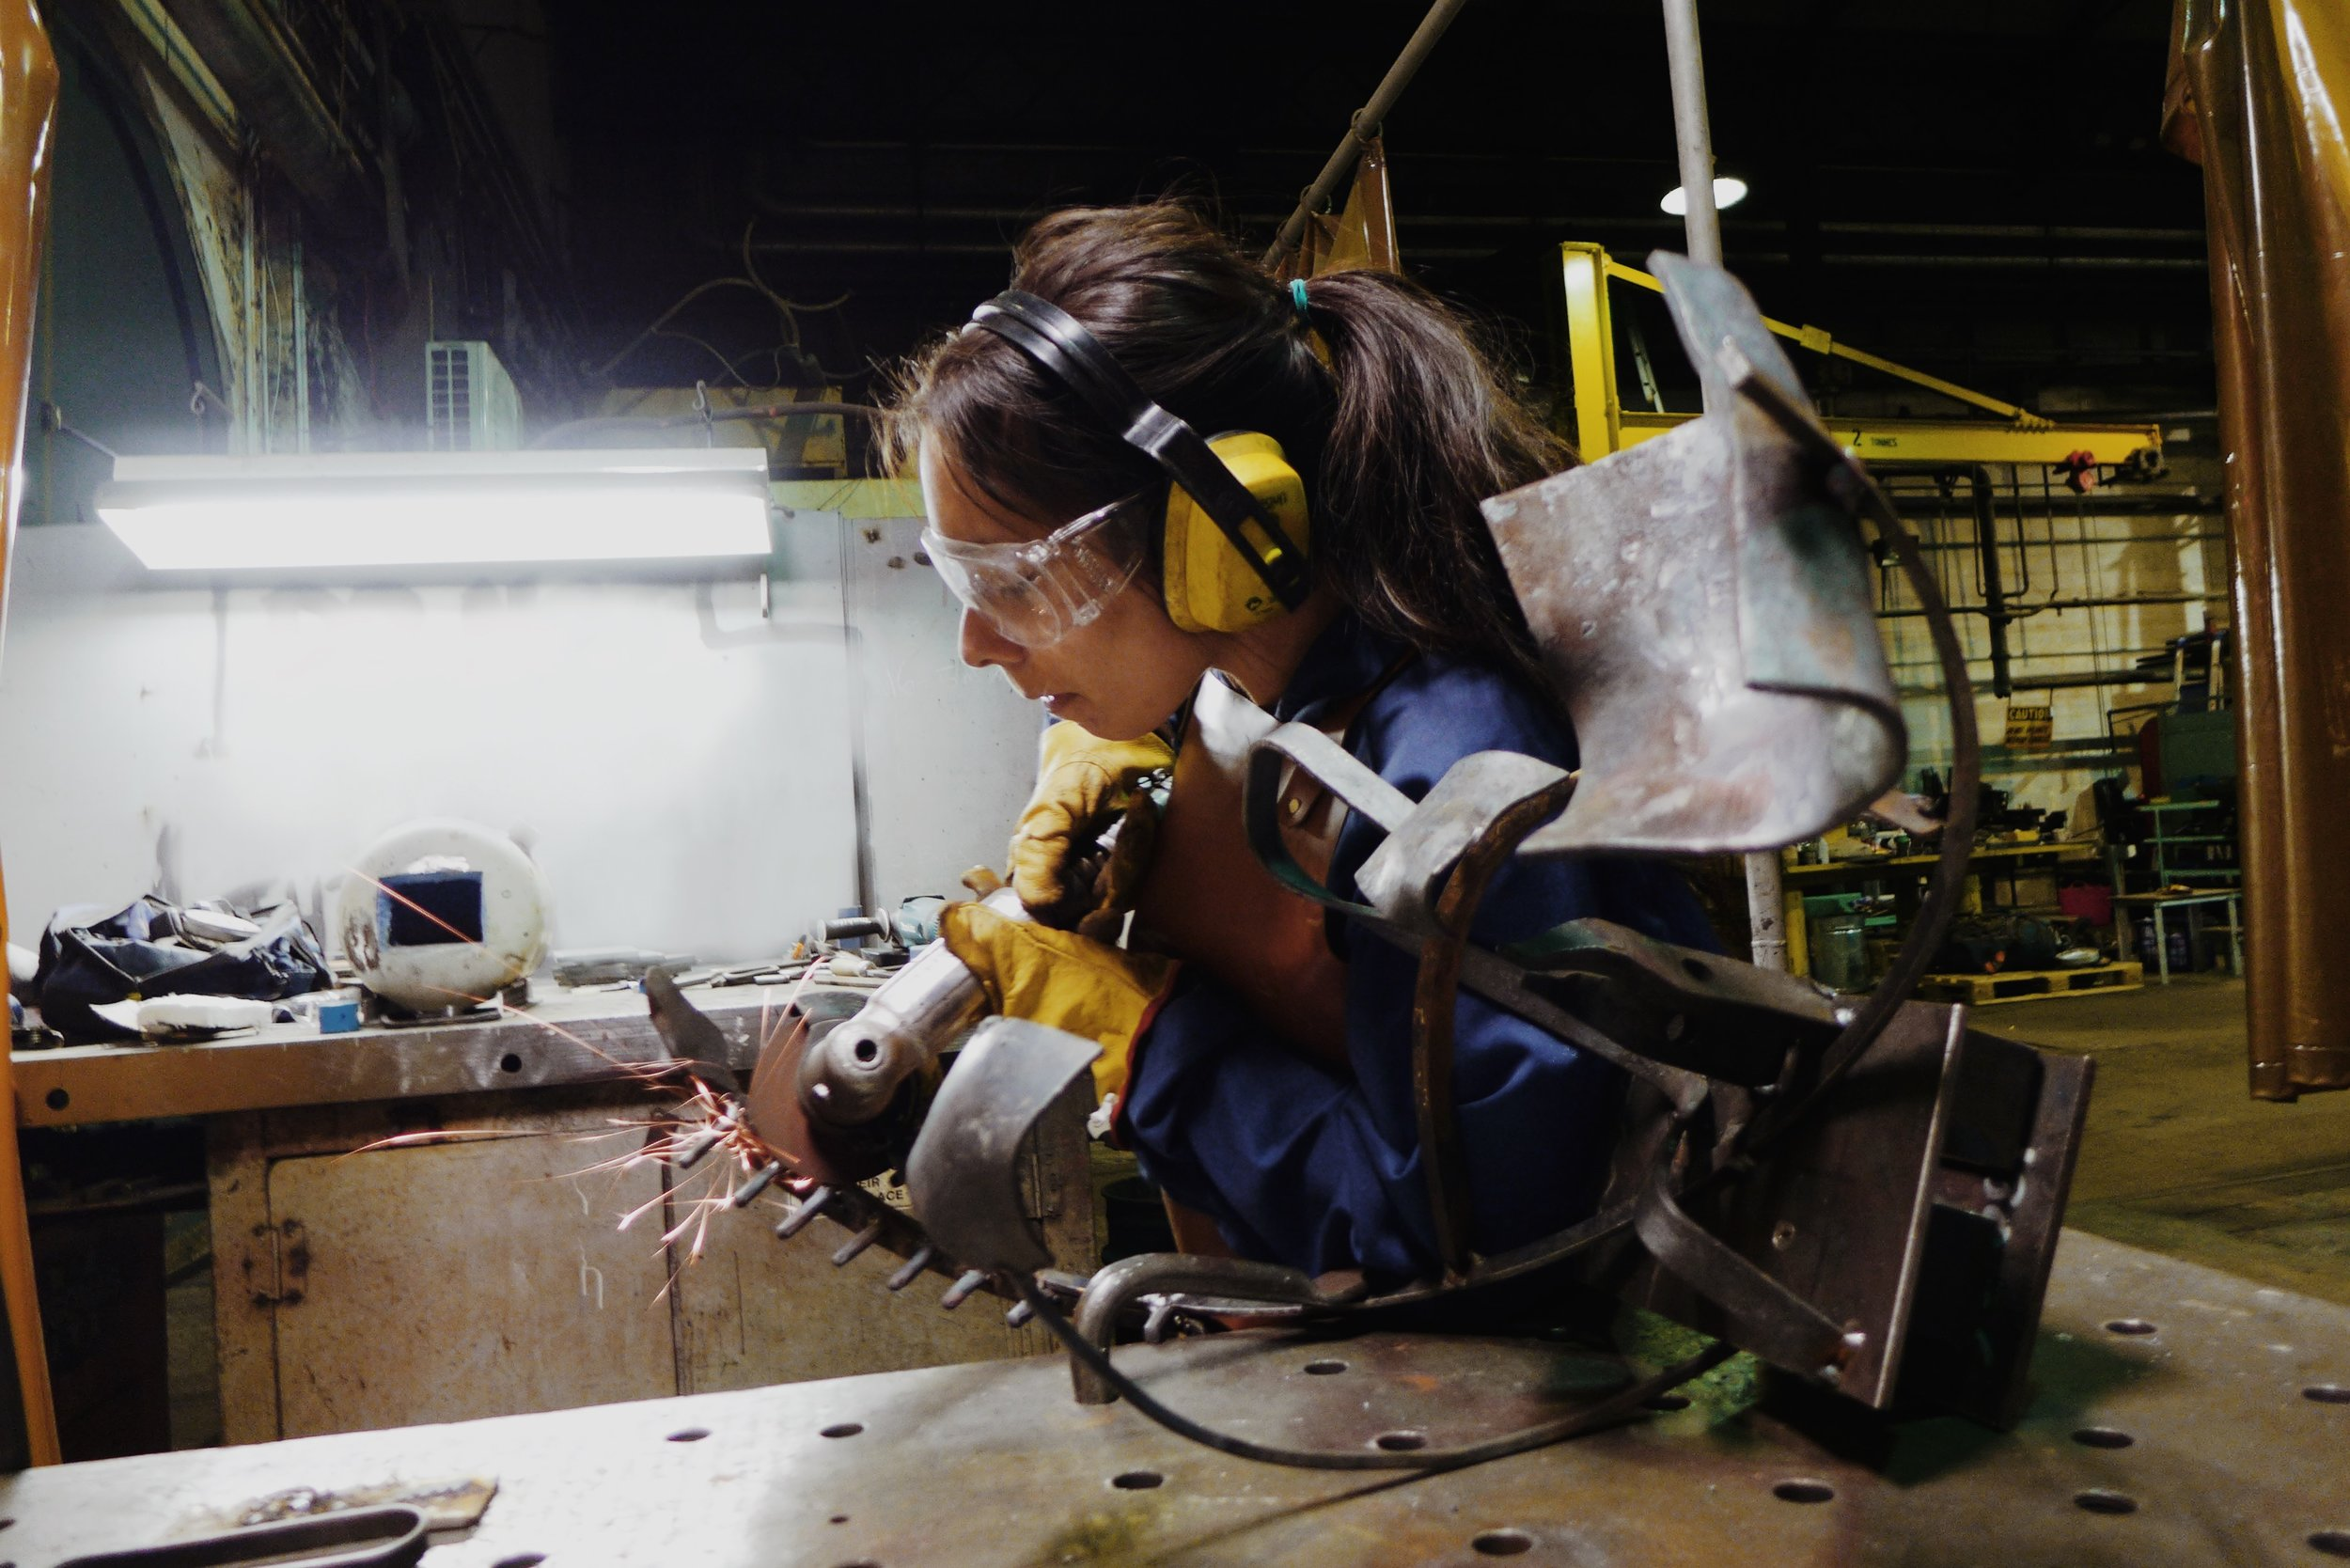 Dressing welds at the Metalwork for Sculpture course at Eveleigh